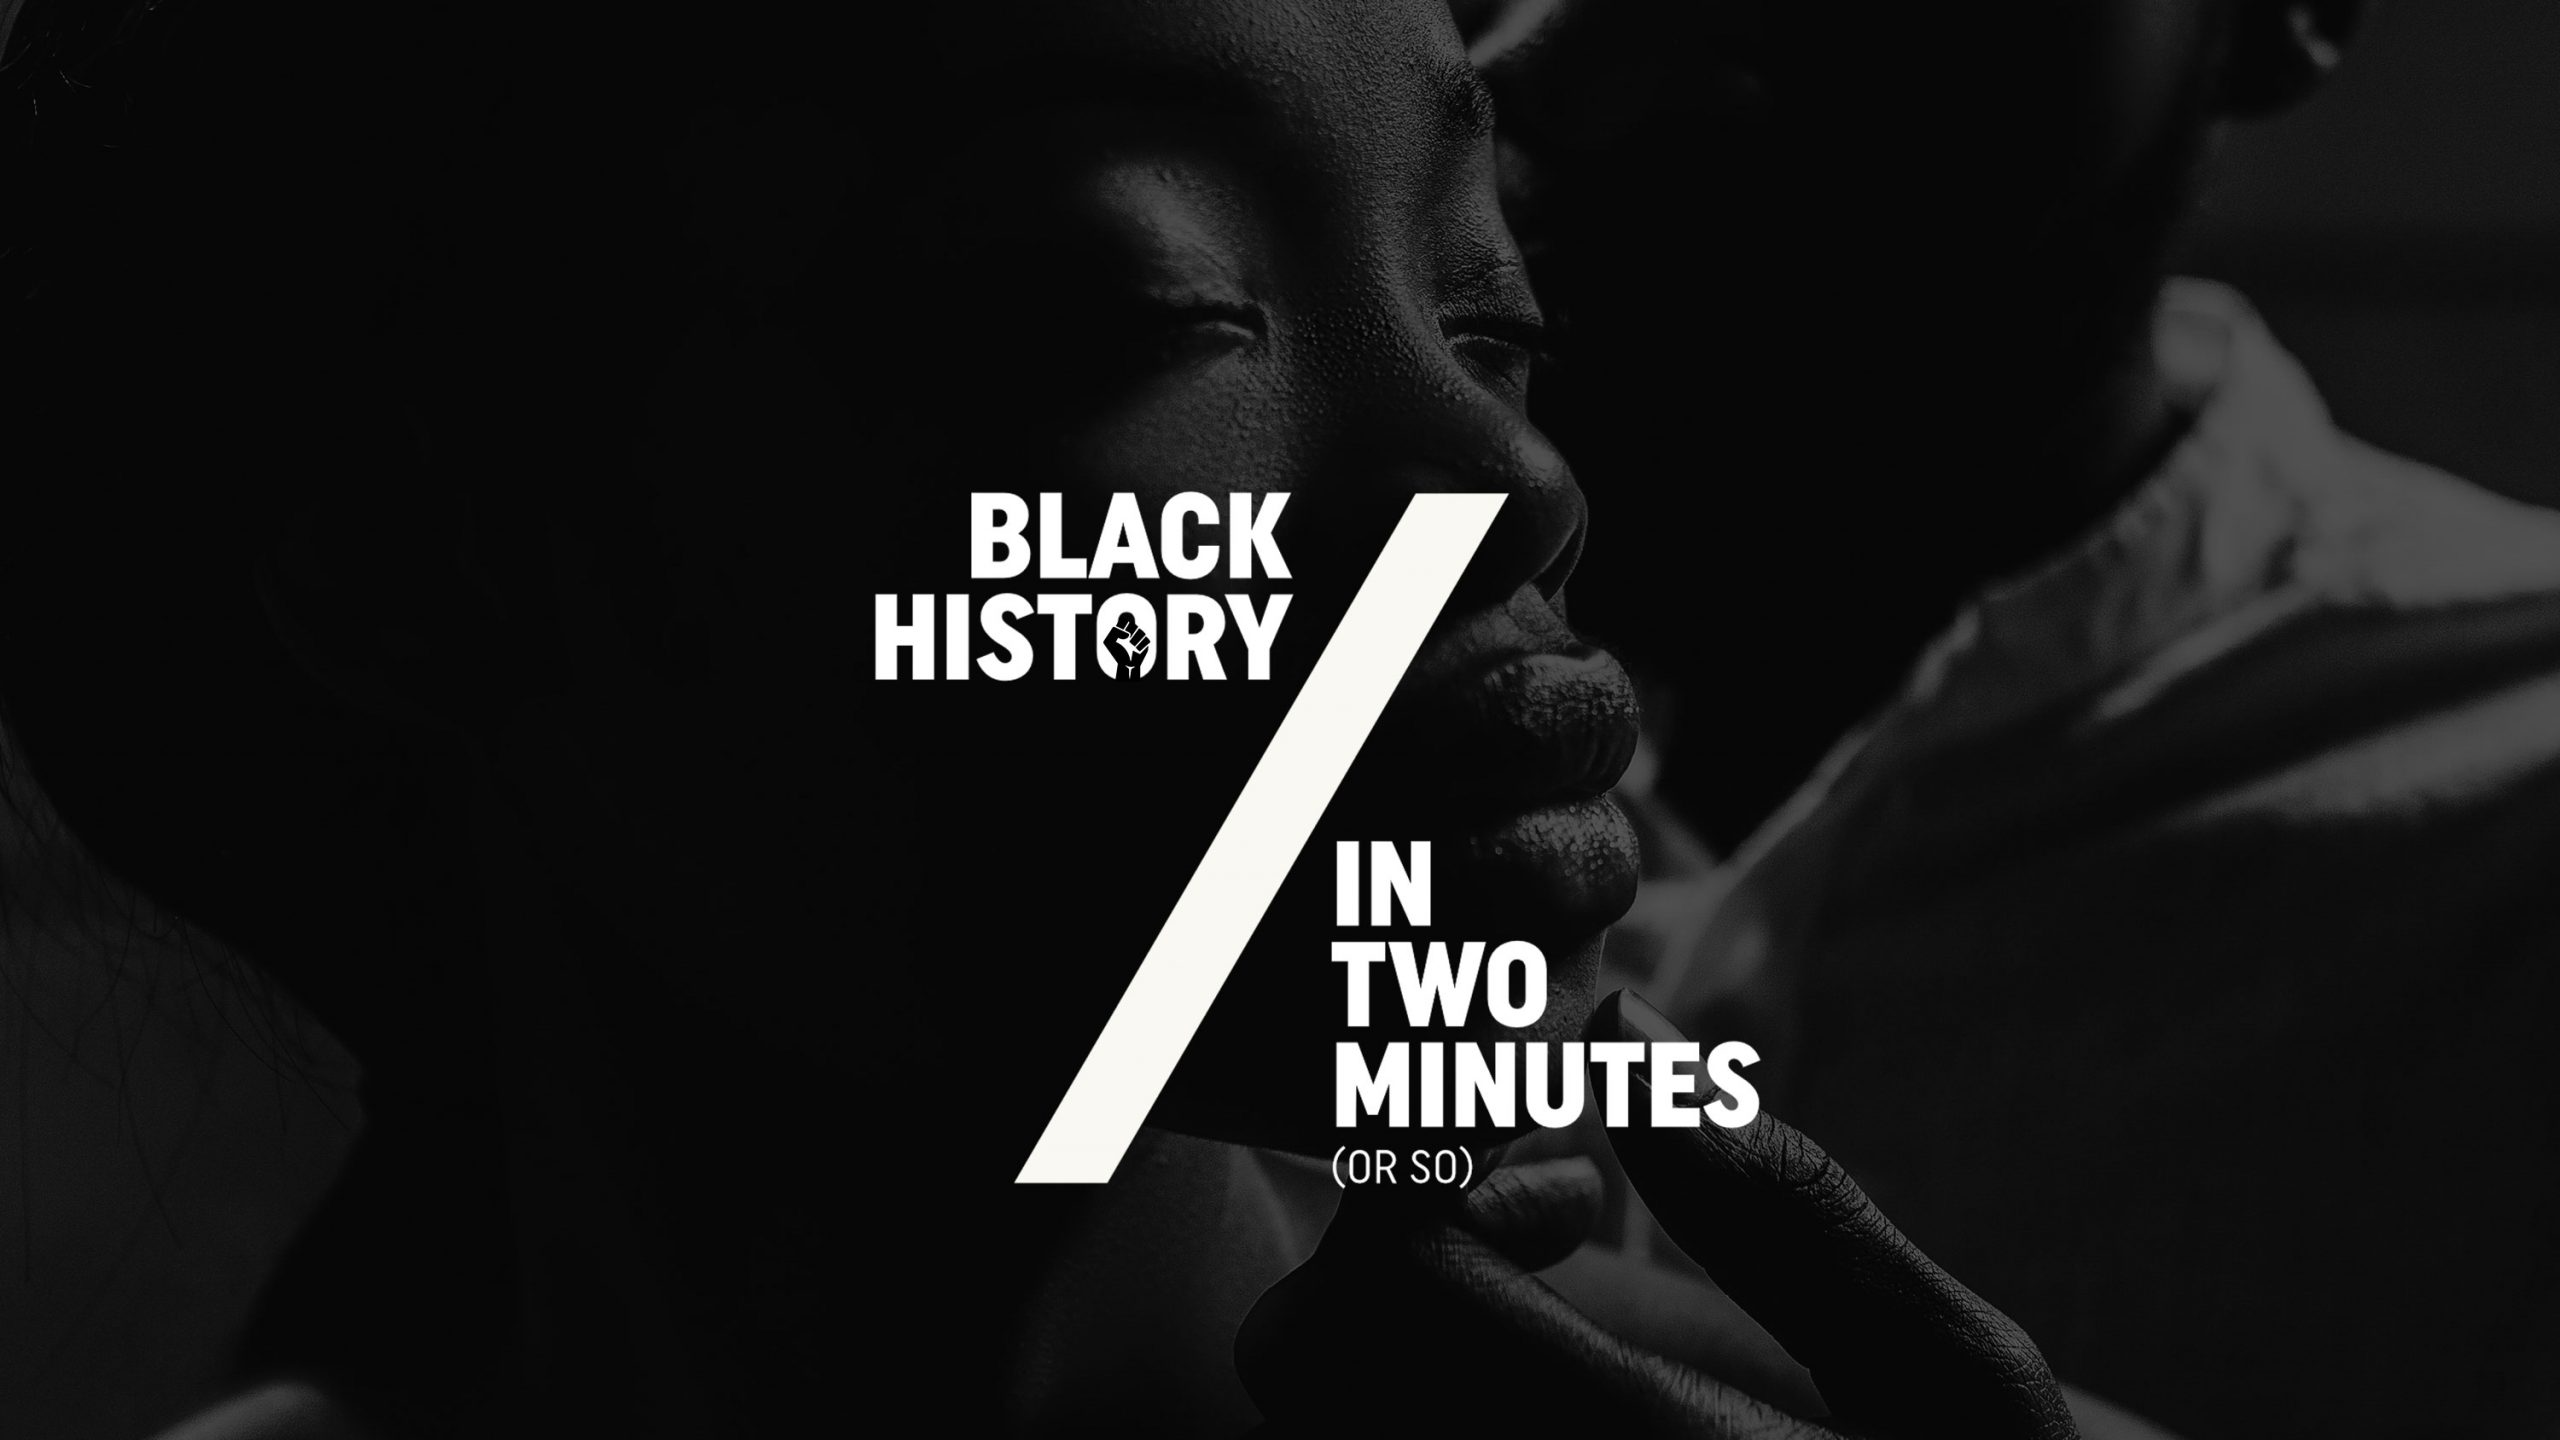 The Vote | Black History in Two Minutes or So